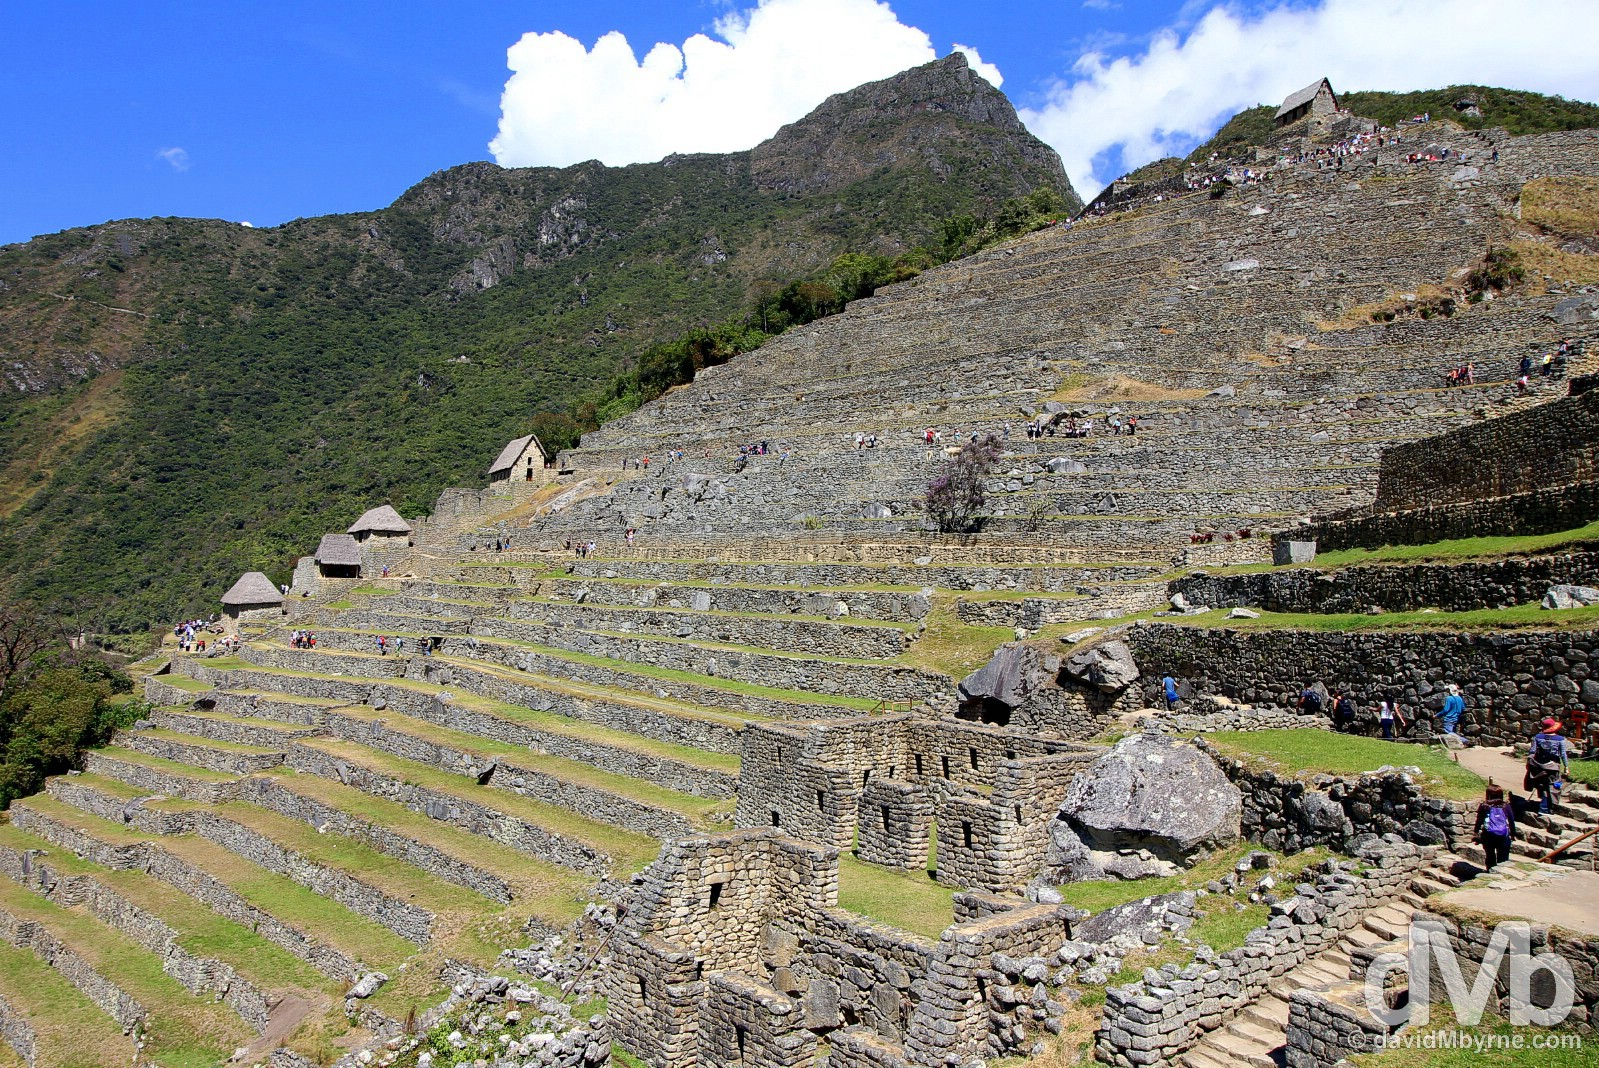 The terraces of the Eastern Agricultural Sector in Machu Picchu, Peru. August 15, 2015.